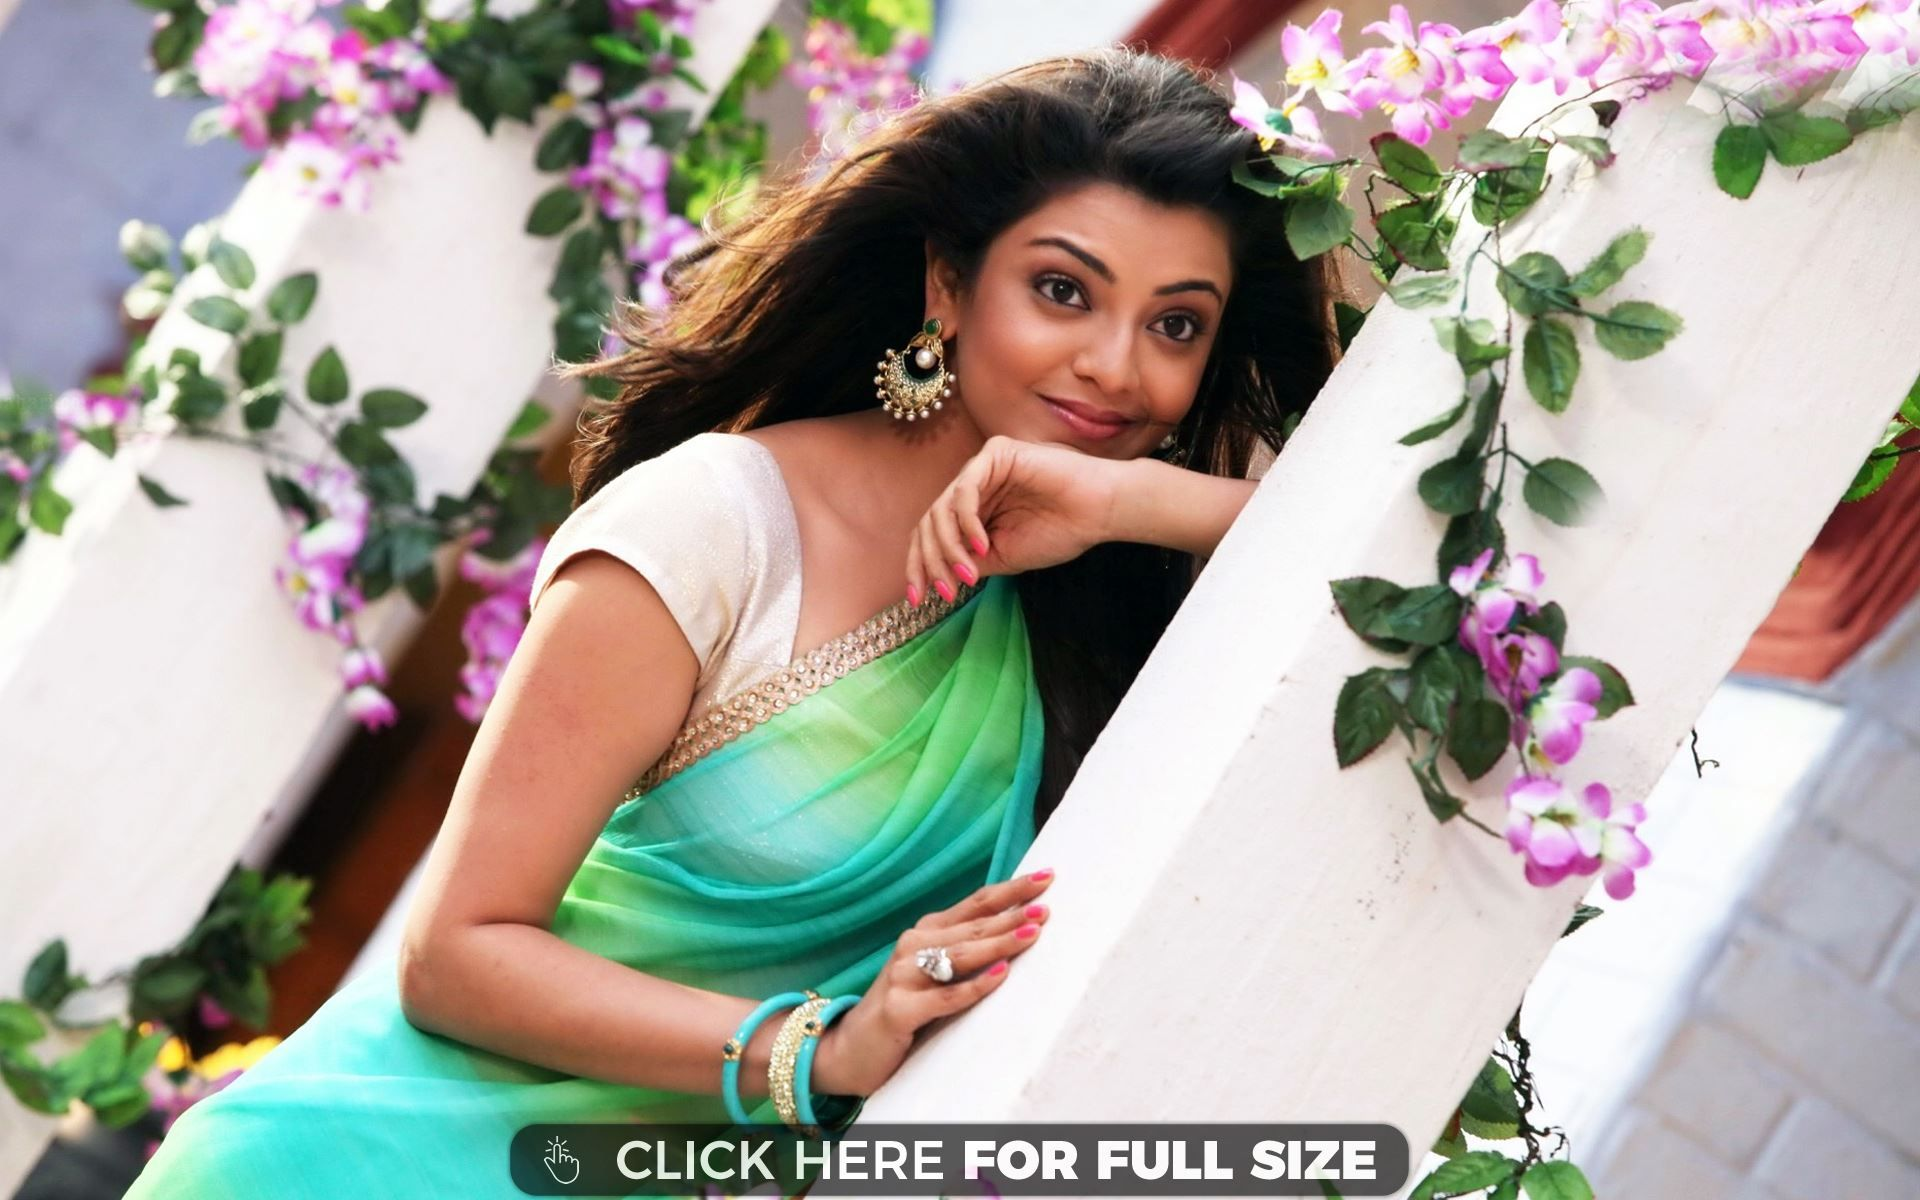 Kajal in jilla hd wallpaper kajal agarwal uma pinterest hd kajal in jilla hd wallpaper altavistaventures Choice Image